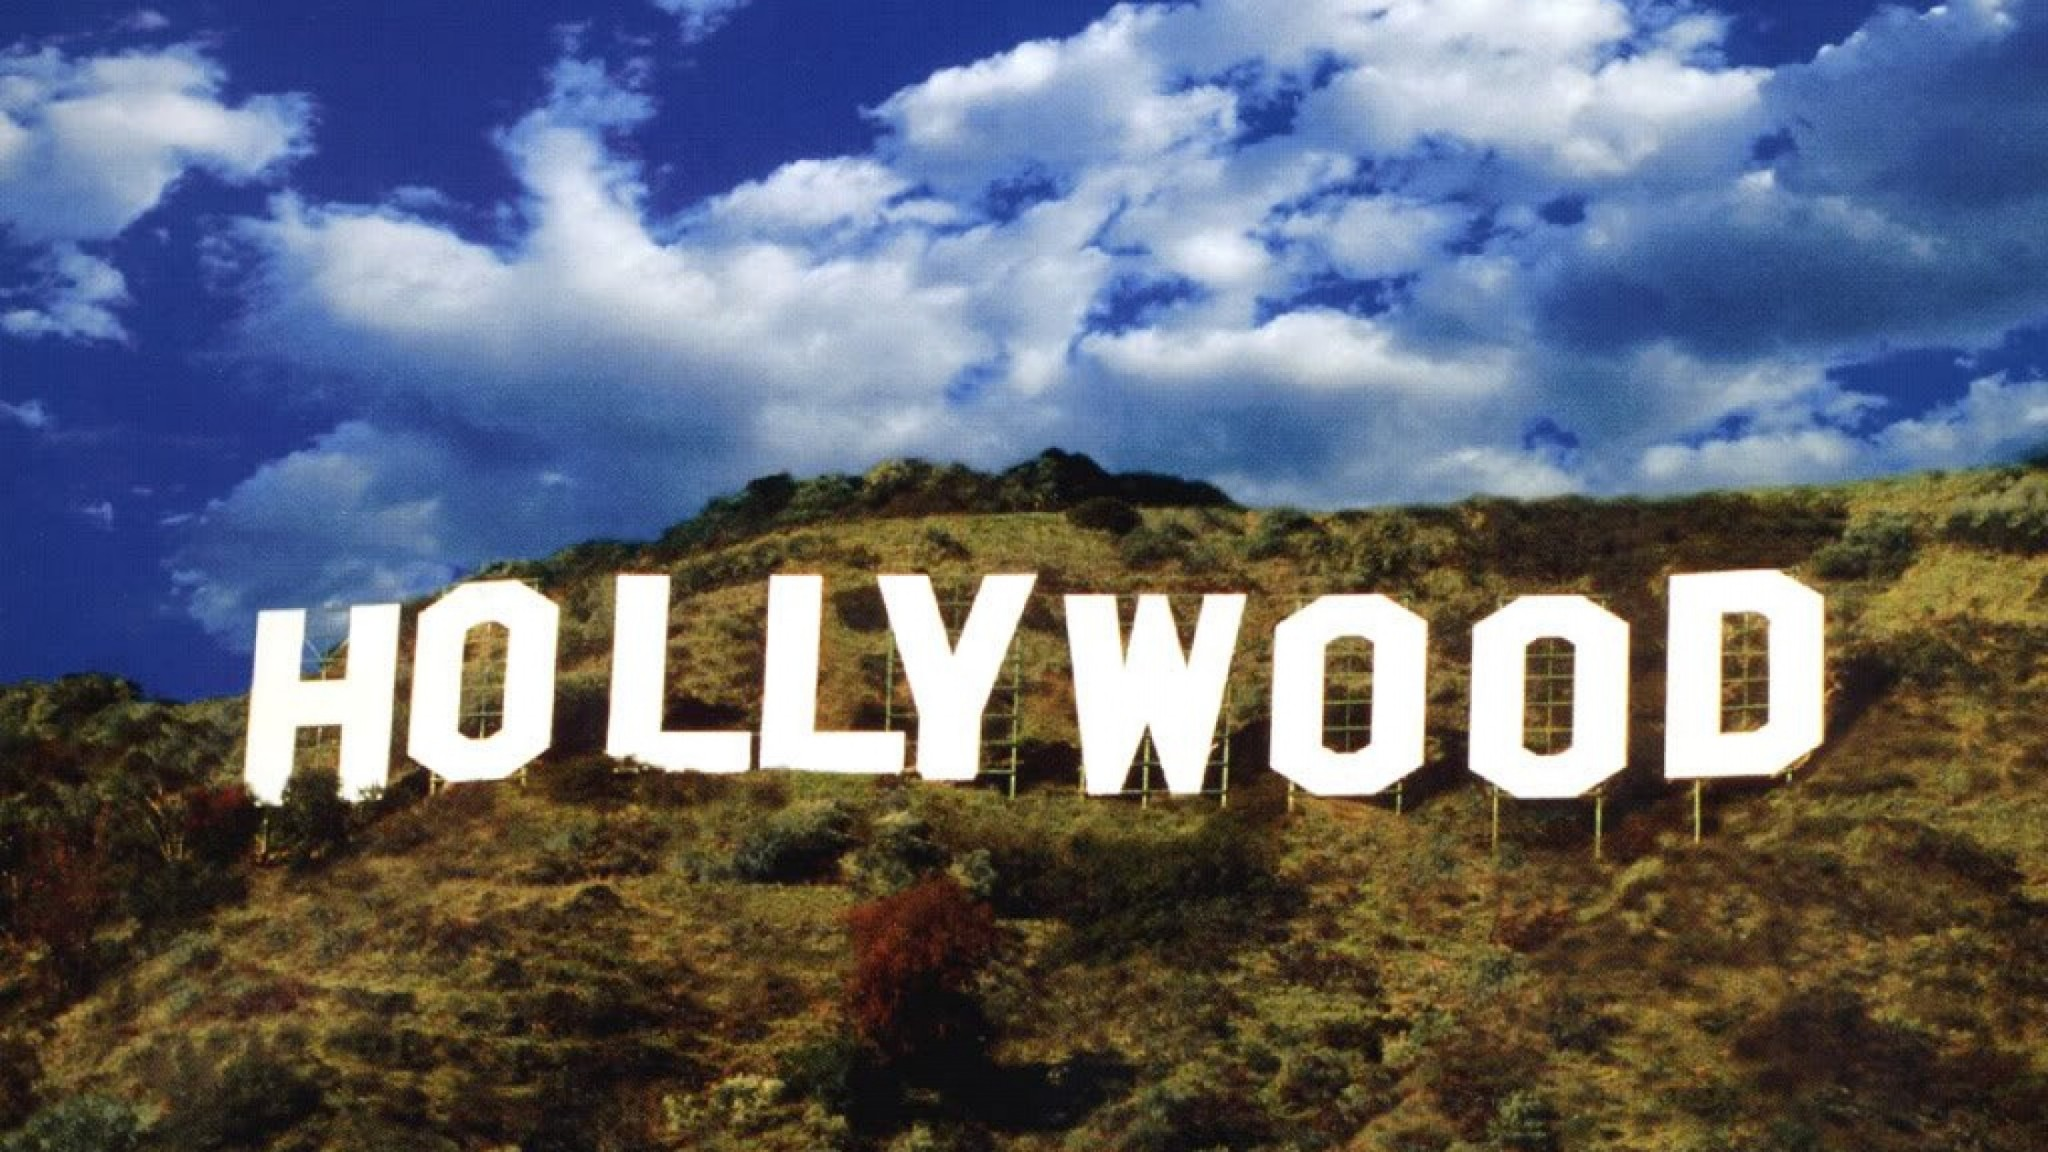 hollywood sign Los Angeles California USA    on line HD Wallpaper